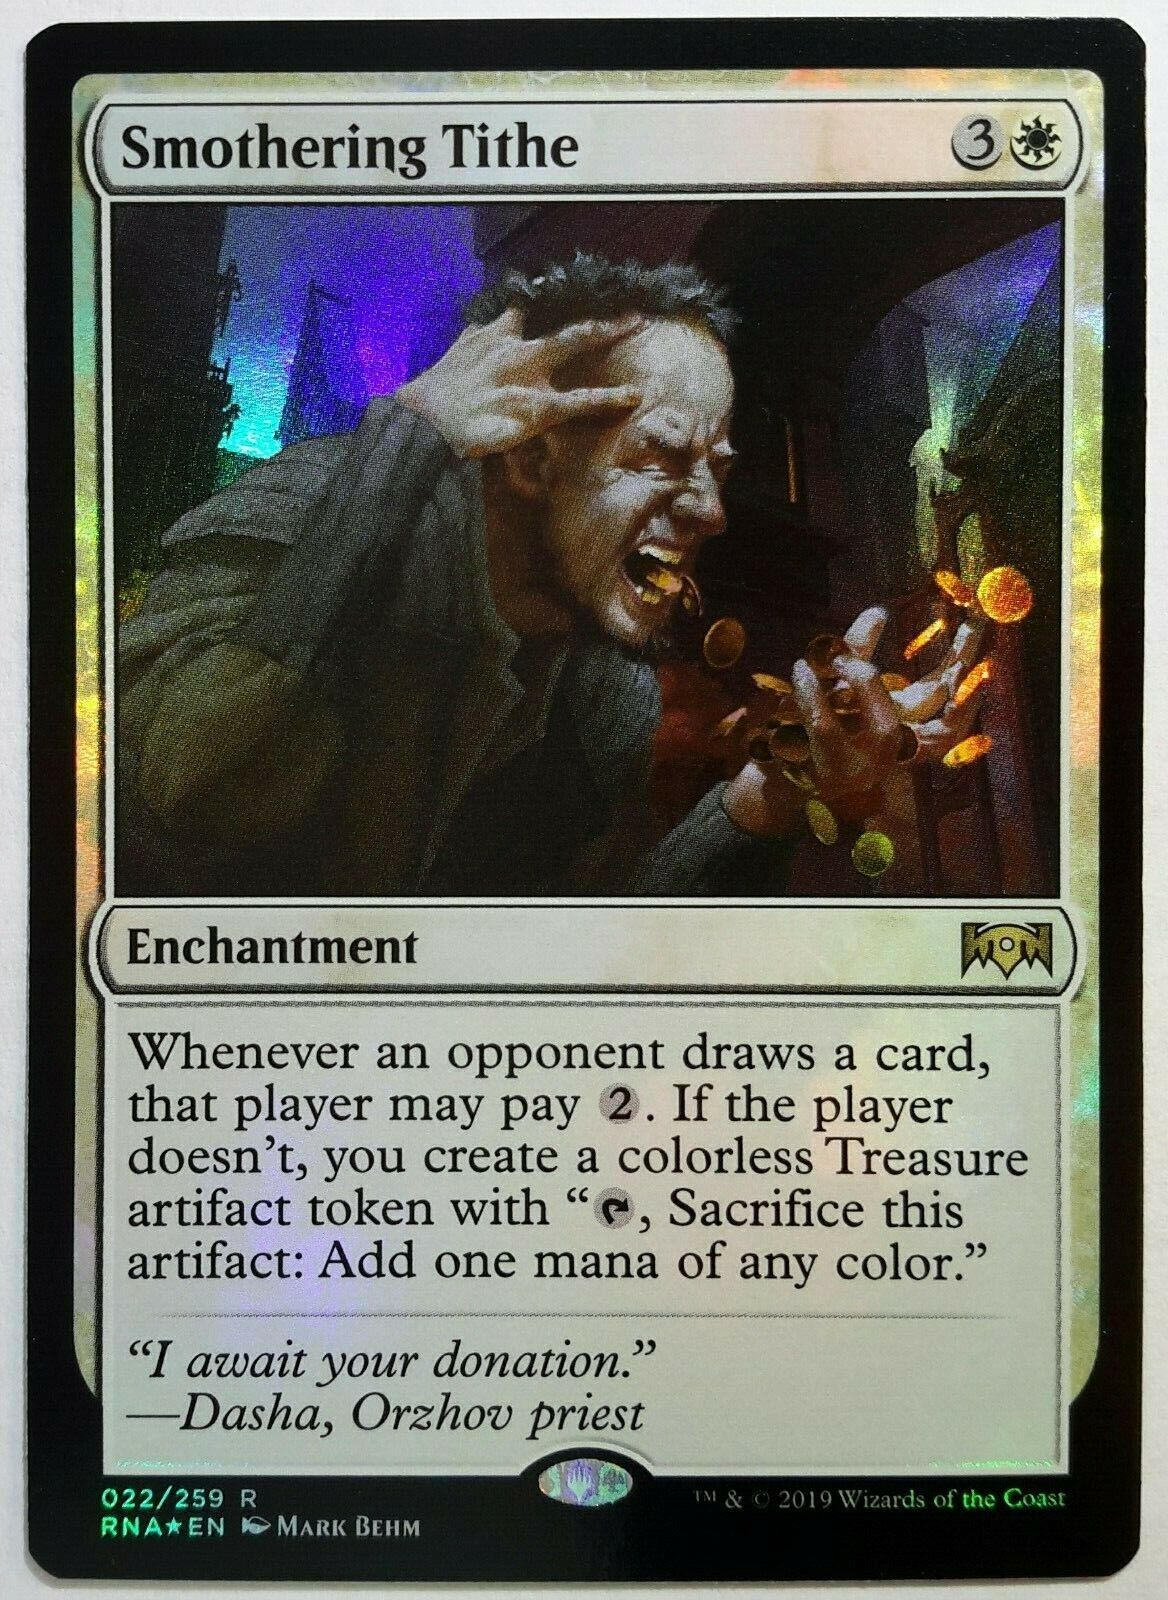 1 X Smothering Tithe White Enchantment New Ravnica Allegiance Mtg Rare Collectible Card Games Toys Hobbies For most magic software, including magic workstation and cockatrice: experts kg